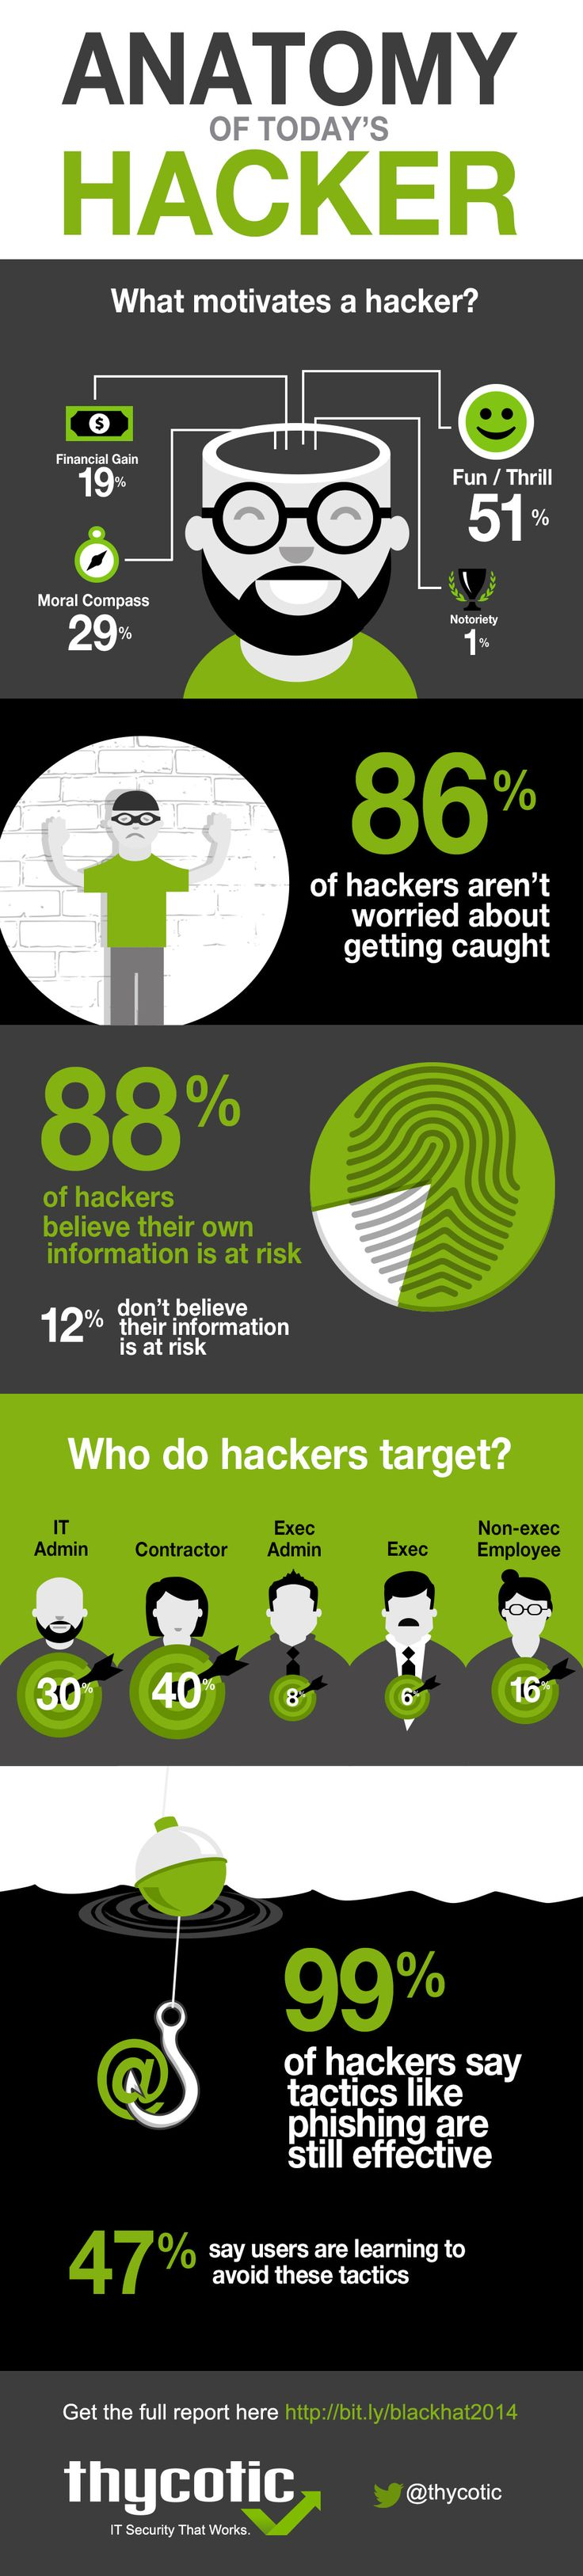 Anatomy Of Today's Hacker #Infographic #Hacking